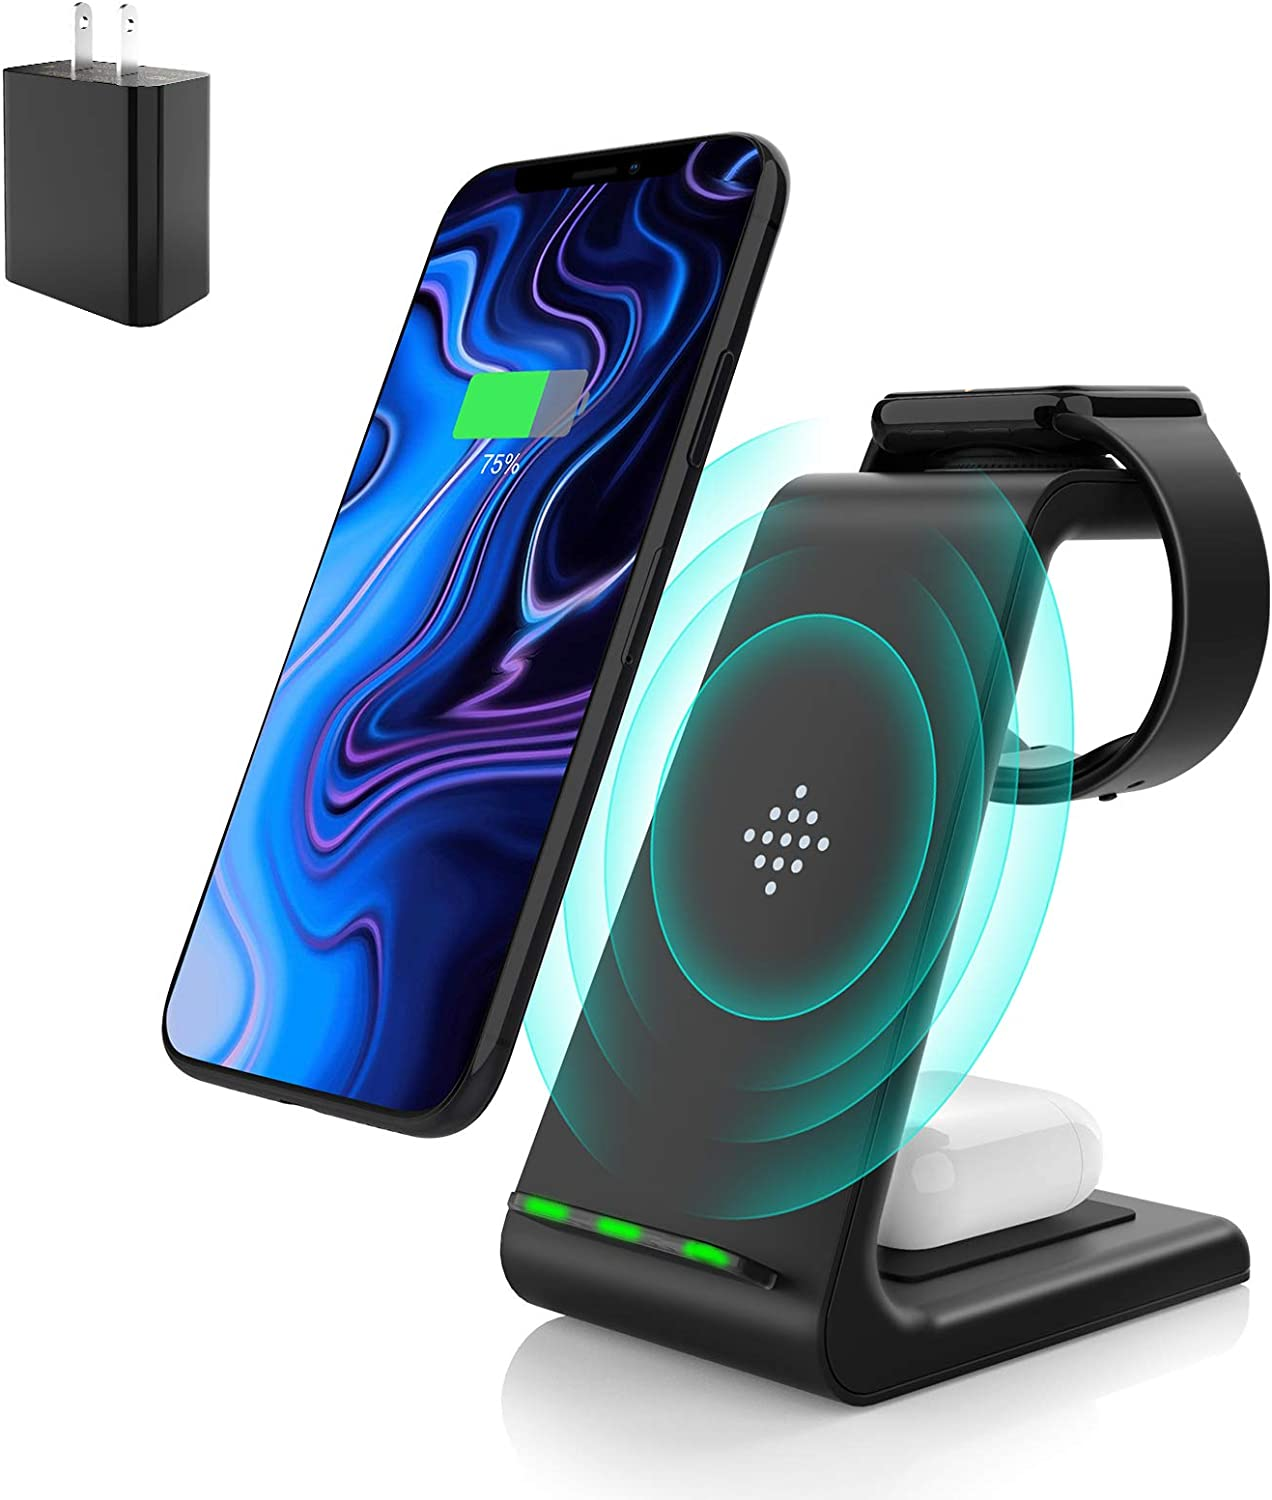 Wireless Charging Stand, Muleug 3 in 1 Wireless Charger Charging Station Dock for Apple Watch 5 4 3 2, Airpods Pro, iPhone 11/11 Pro/X/Xr/Xs/8 Plus, Qi-Certified Phones (with QC3.0 Adapter)